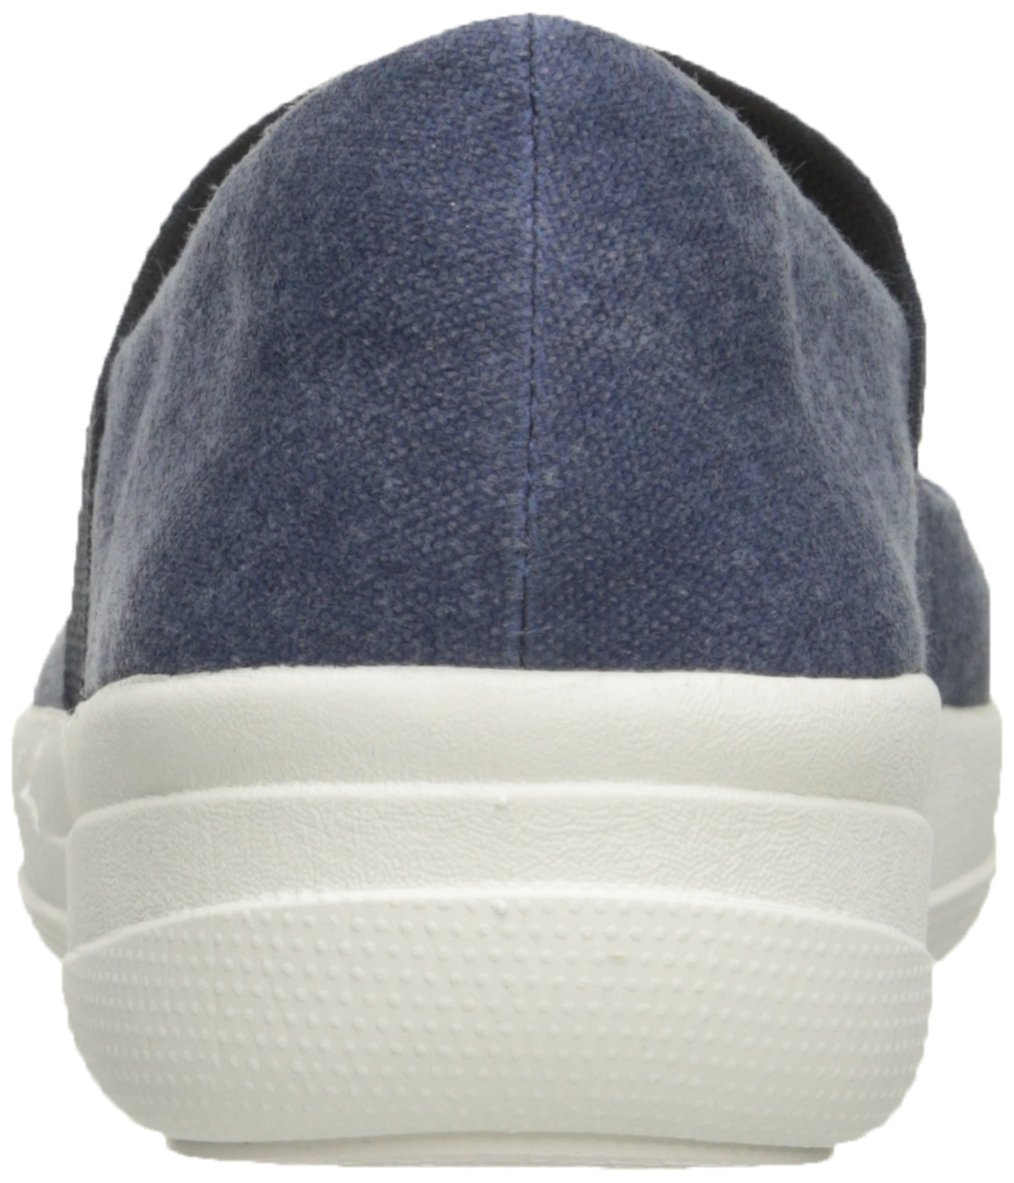 FitFlop Women's F-Sporty Mary Jane Flat, Midnight Navy, 6.5 M US by FitFlop (Image #2)